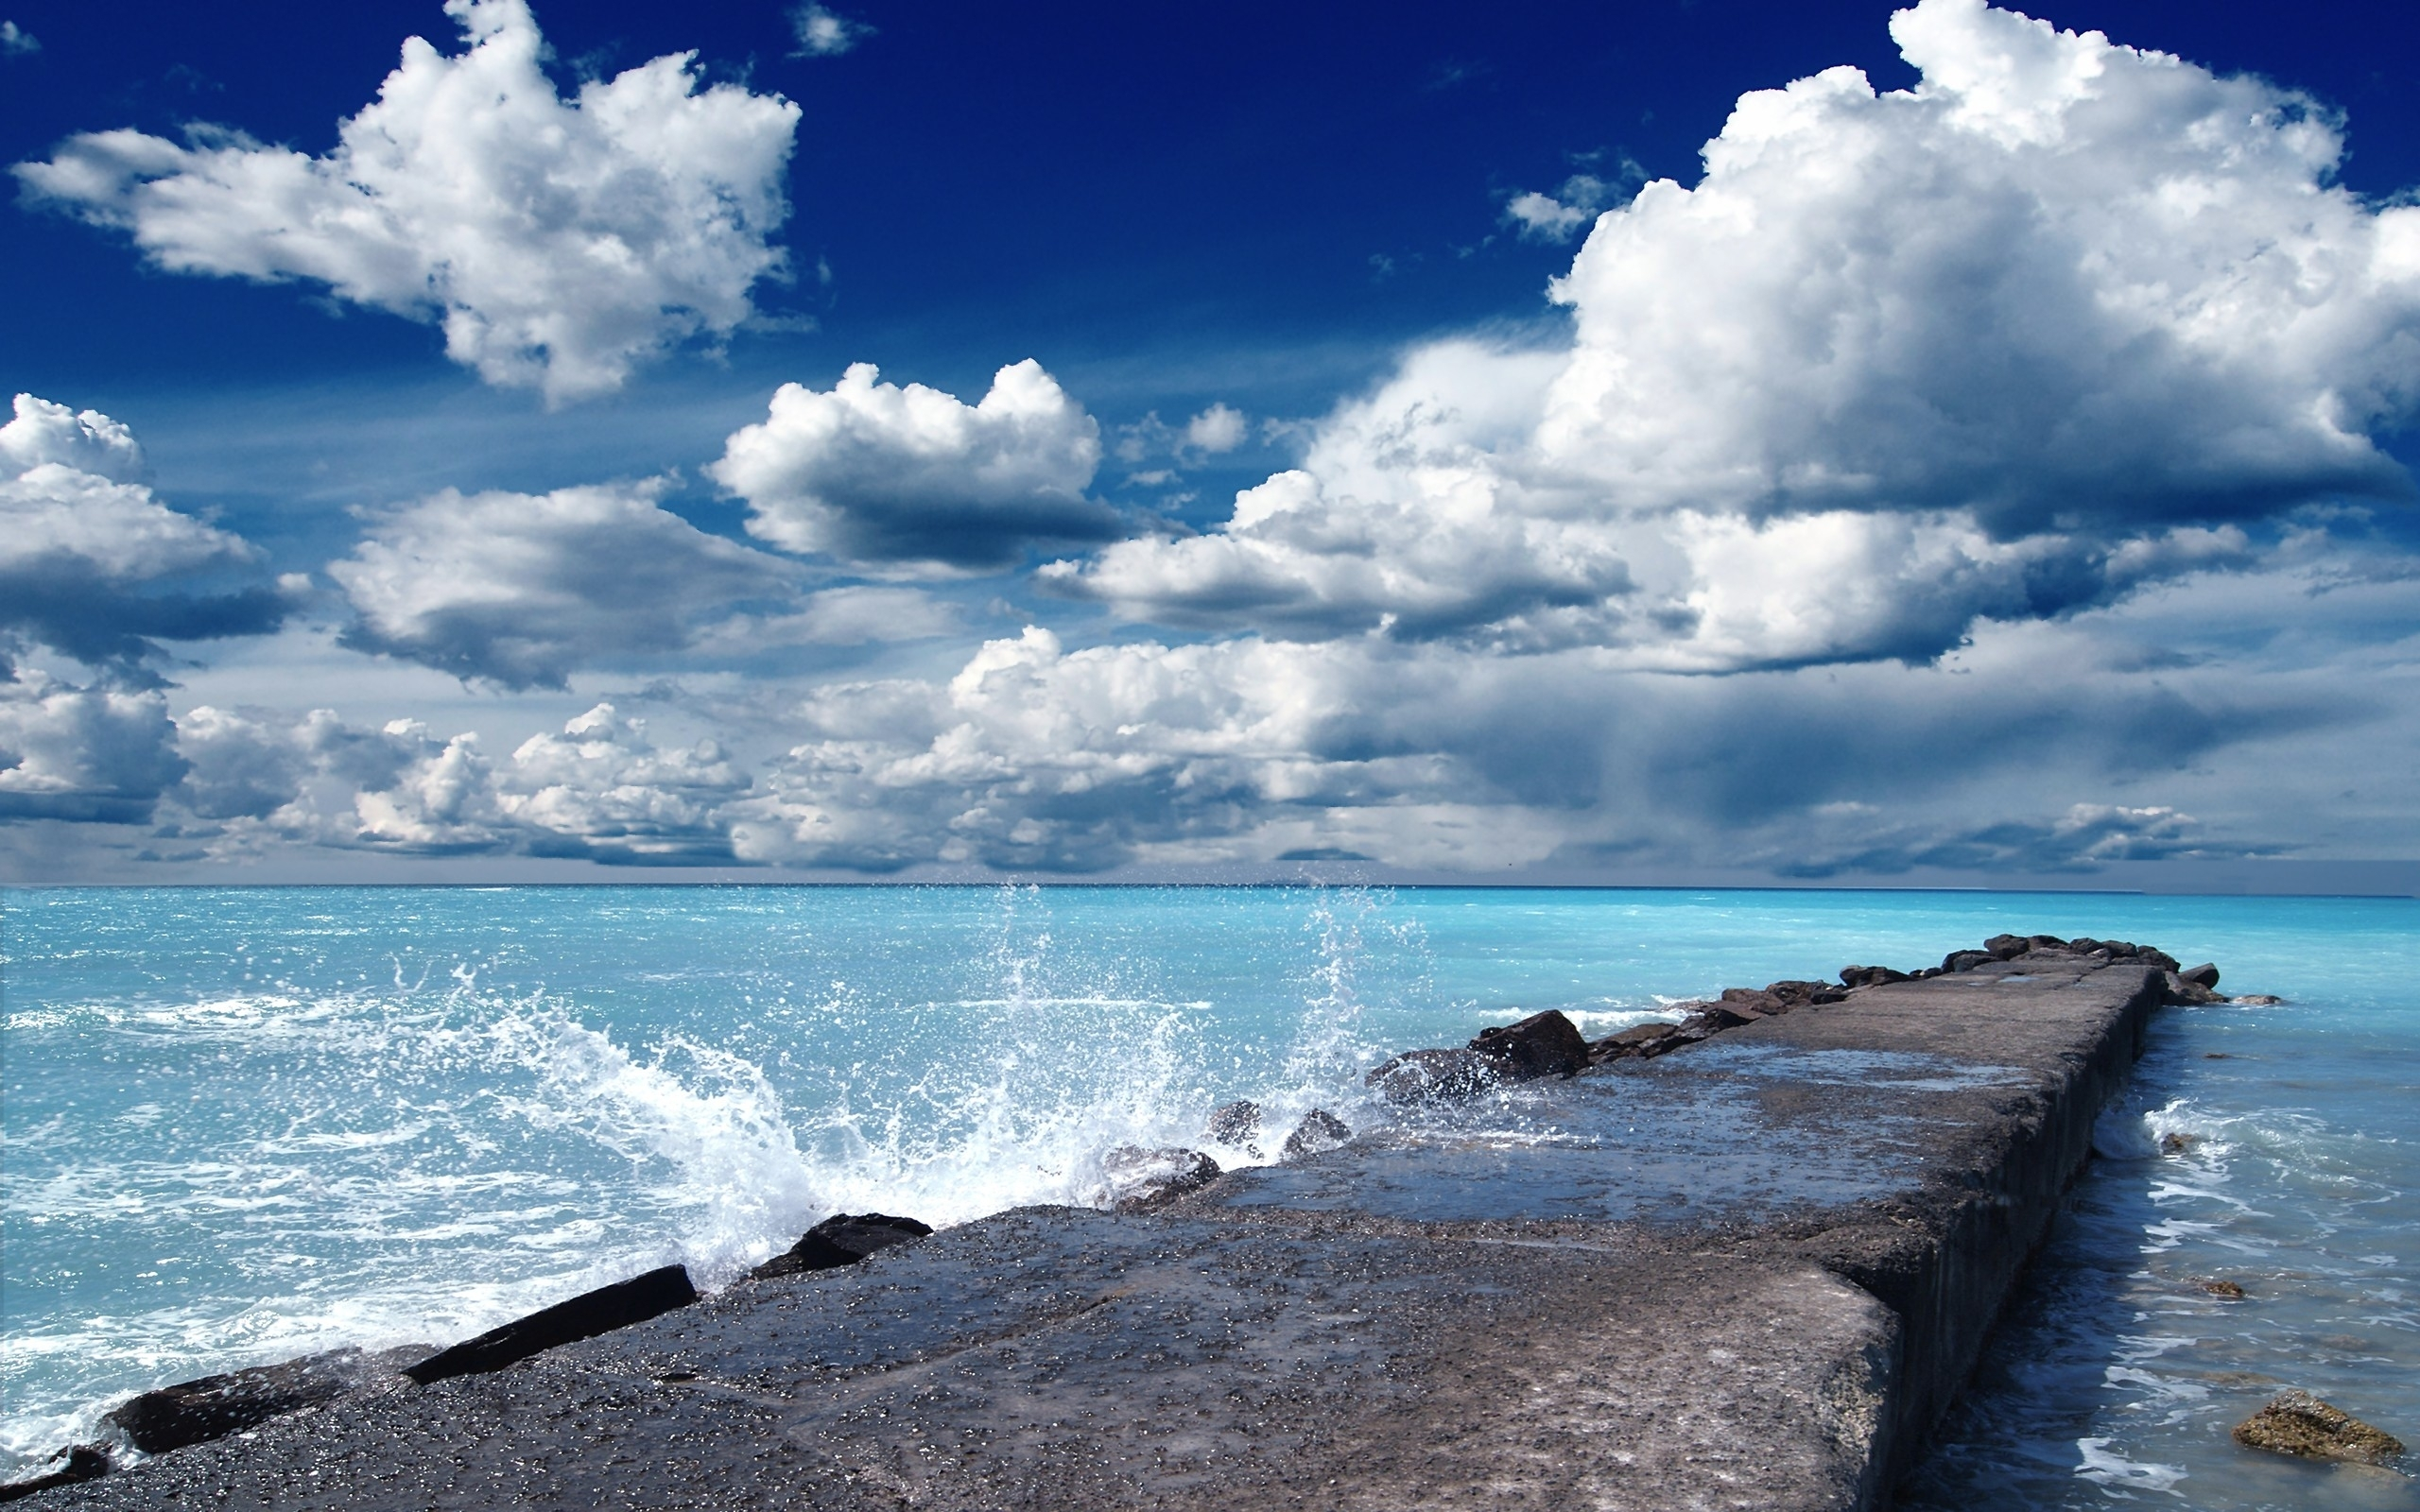 Free Images 4k Wallpaper Beach Calm Cliff Clouds Hd: Clouds Dock Blue Sea Splashing Wallpapers